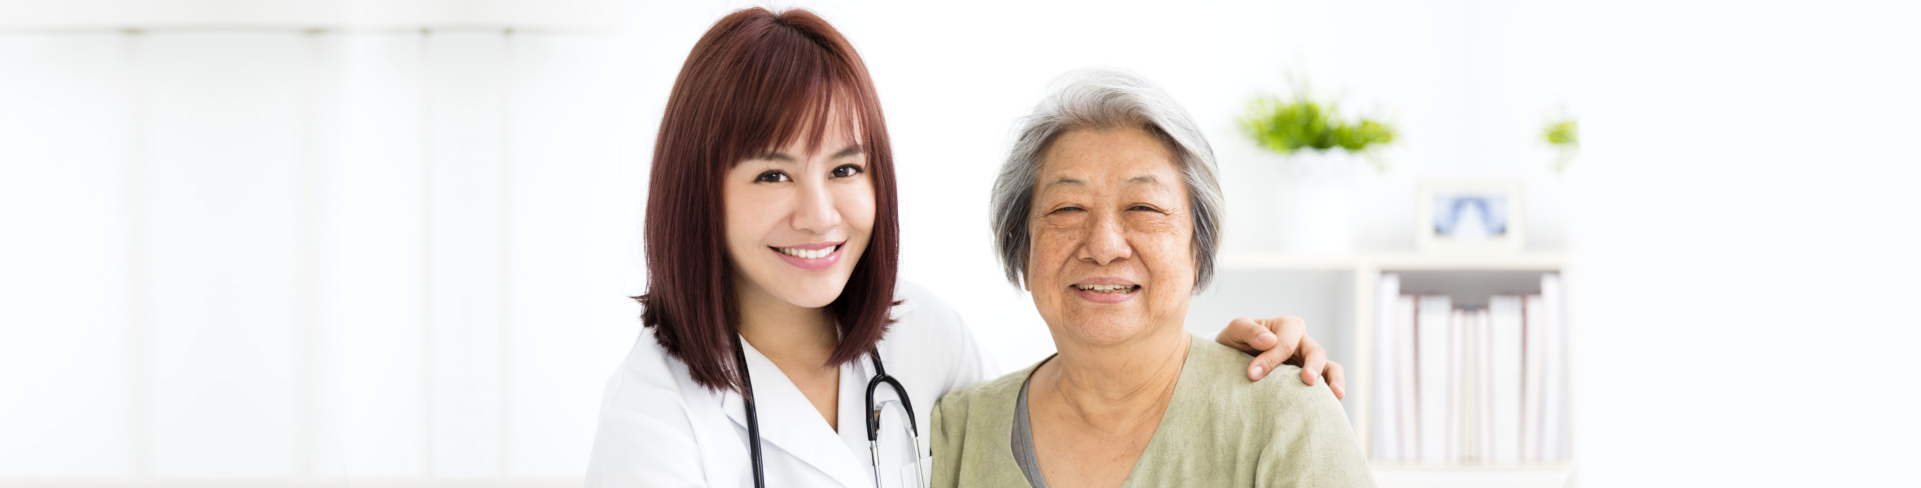 female doctor and senior woman smiling